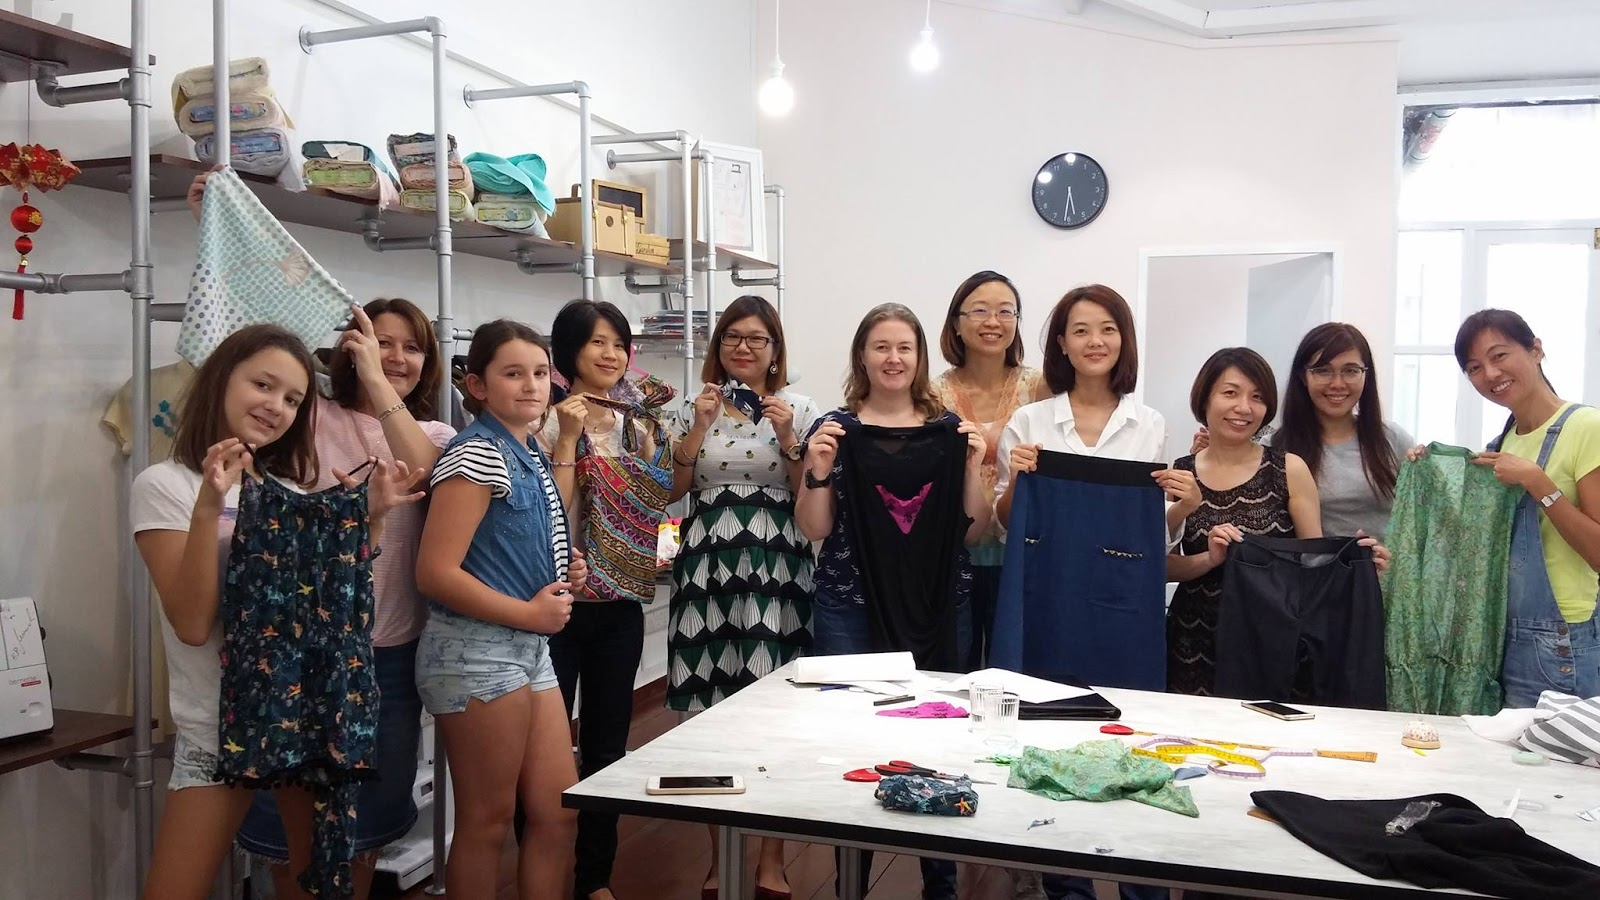 Restyle Your Wardrobe Workshop - Upcycling